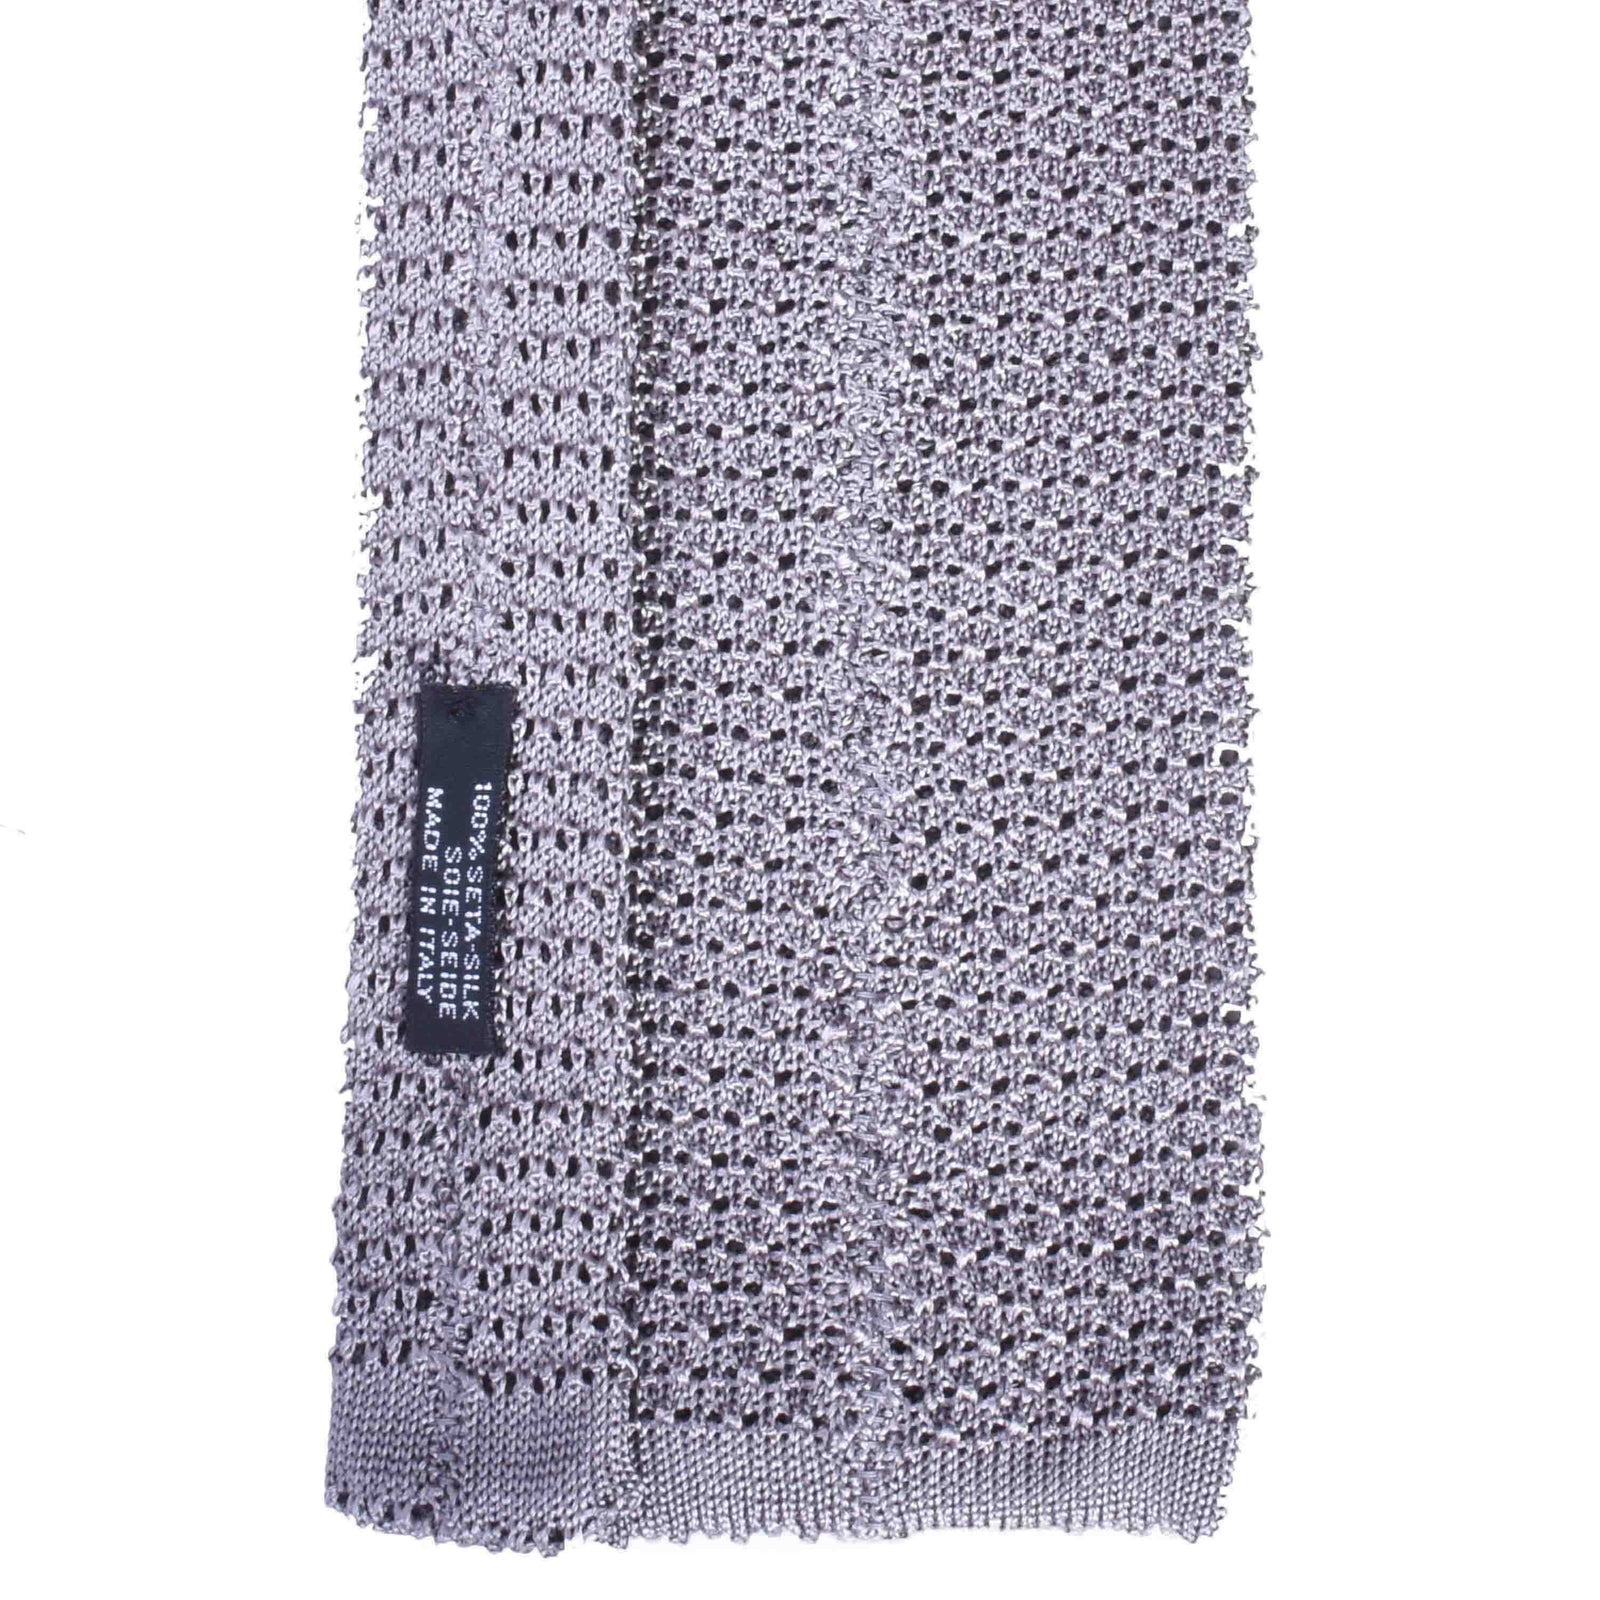 KNITTED CROCHET LIGHT GREY TIE - serafinesilk